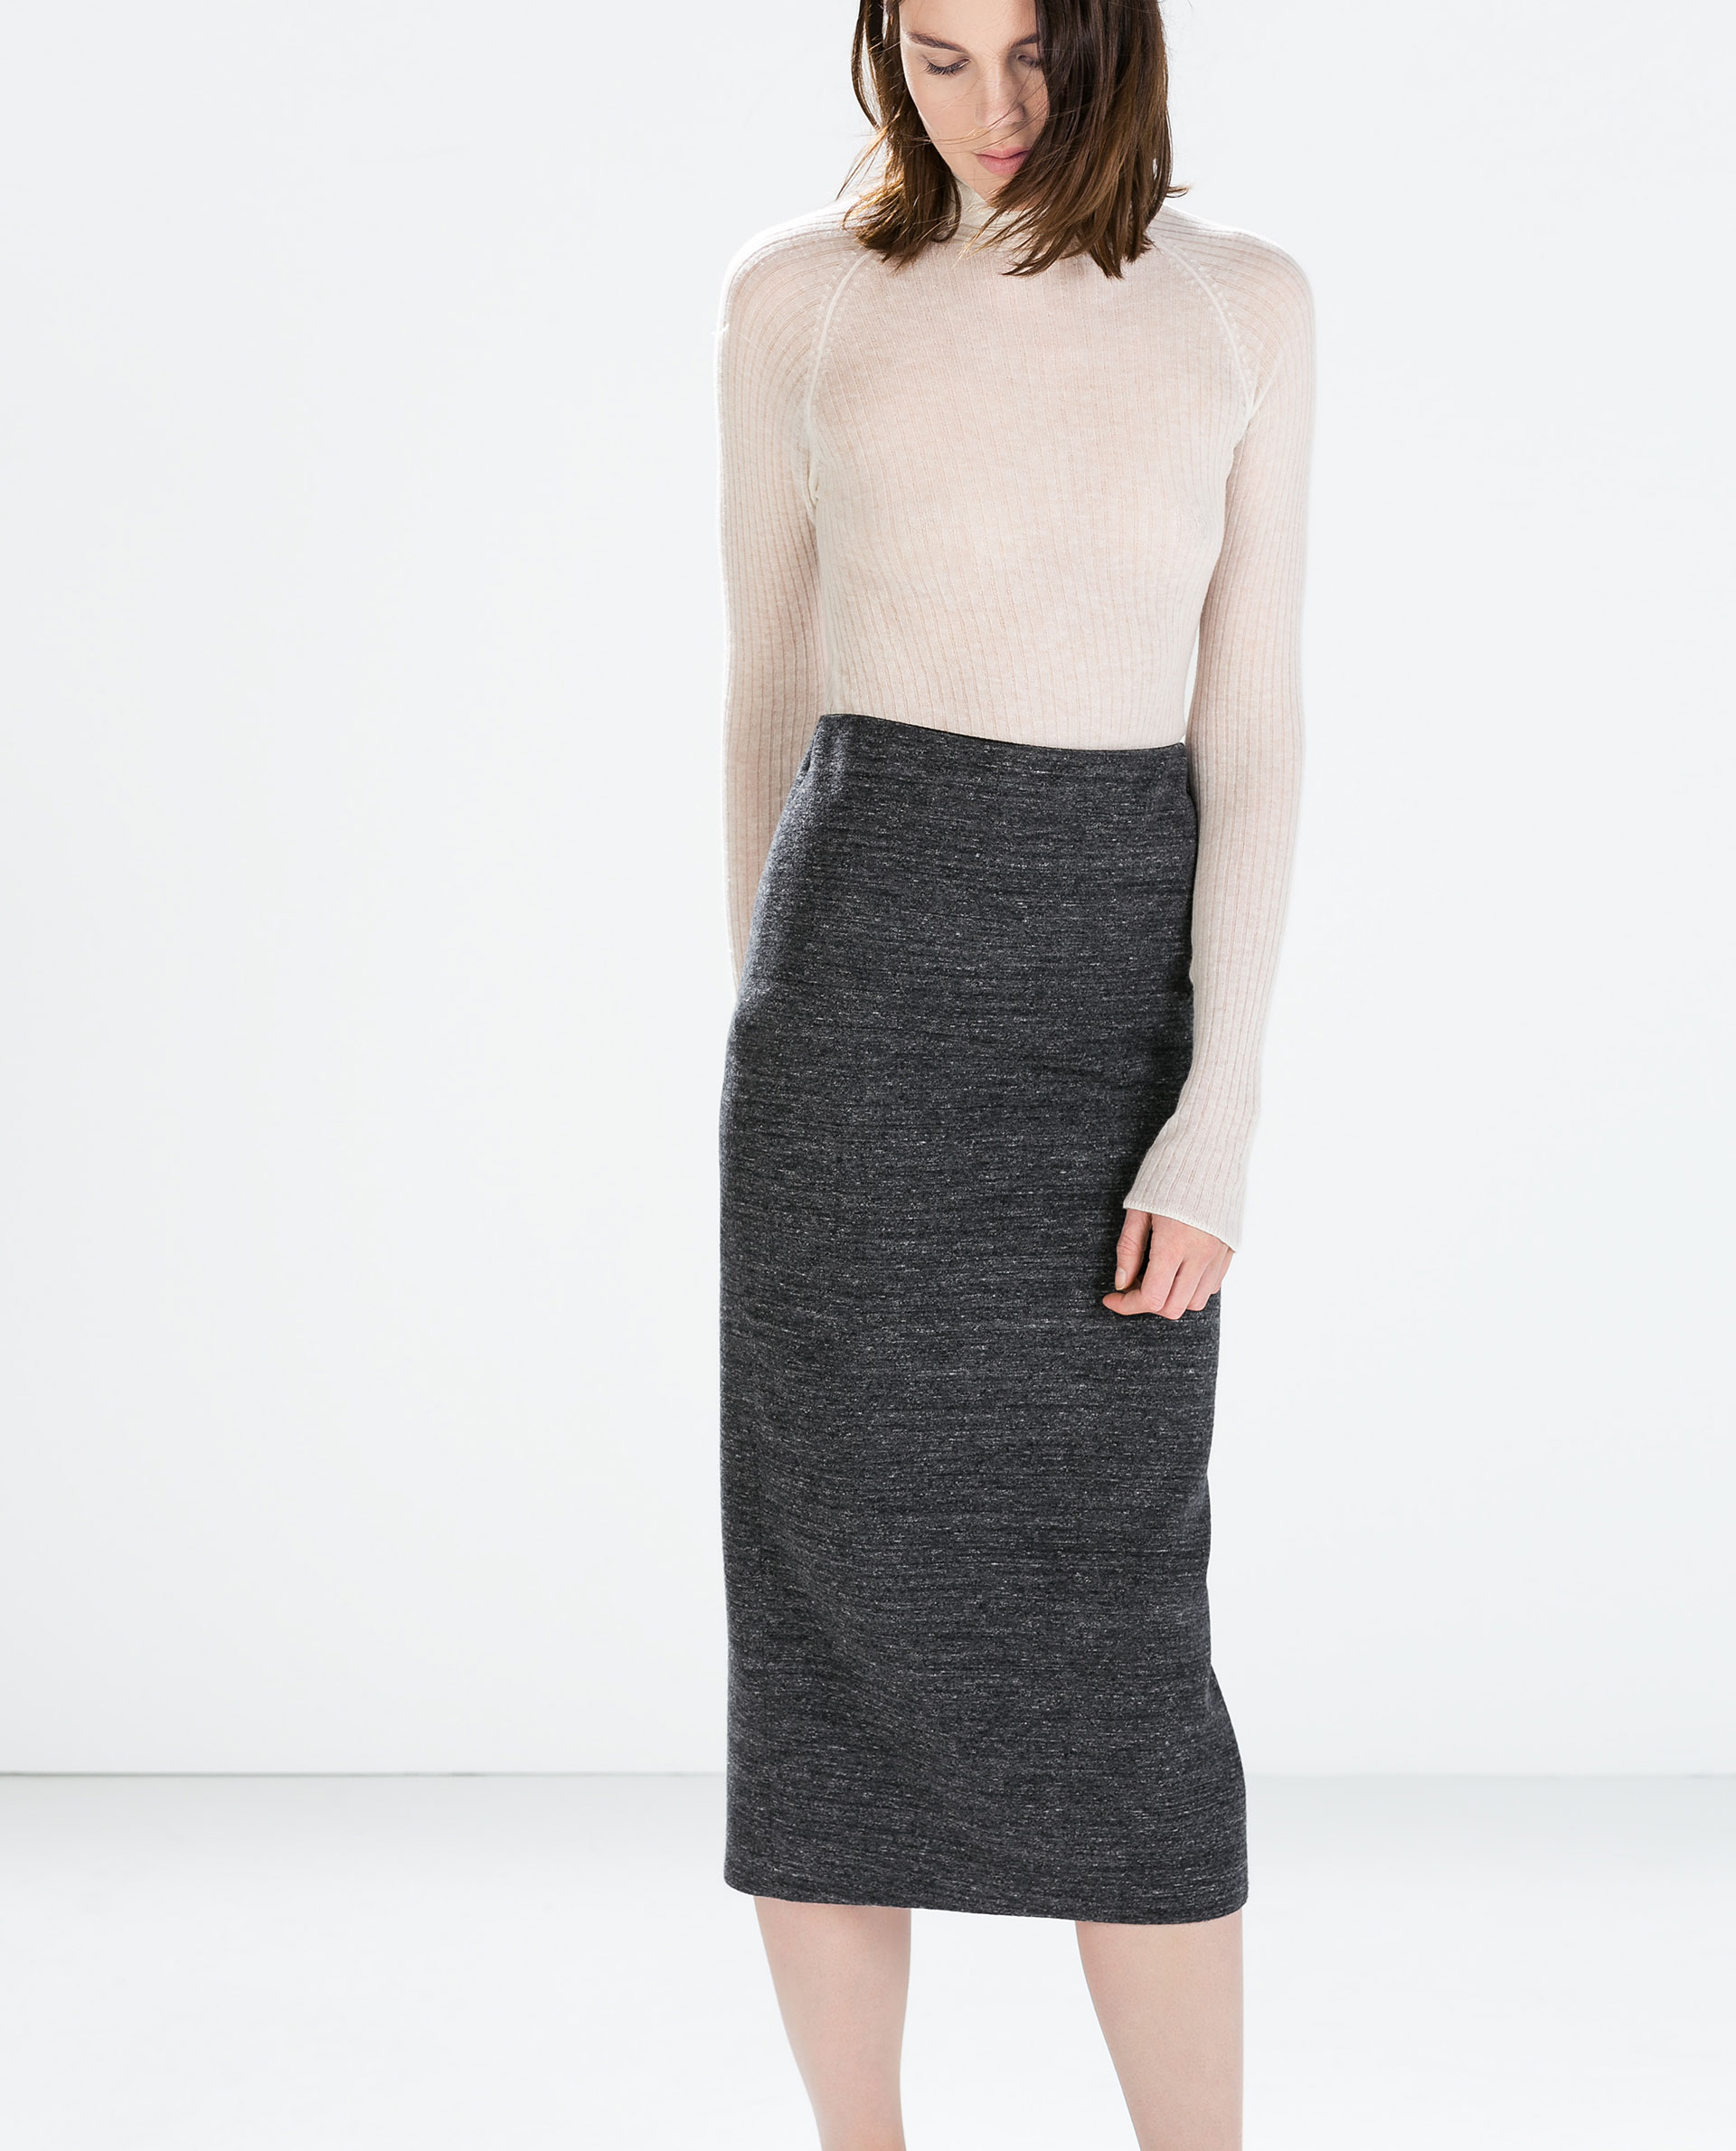 Zara Knit Midi Pencil Skirt in Gray | Lyst